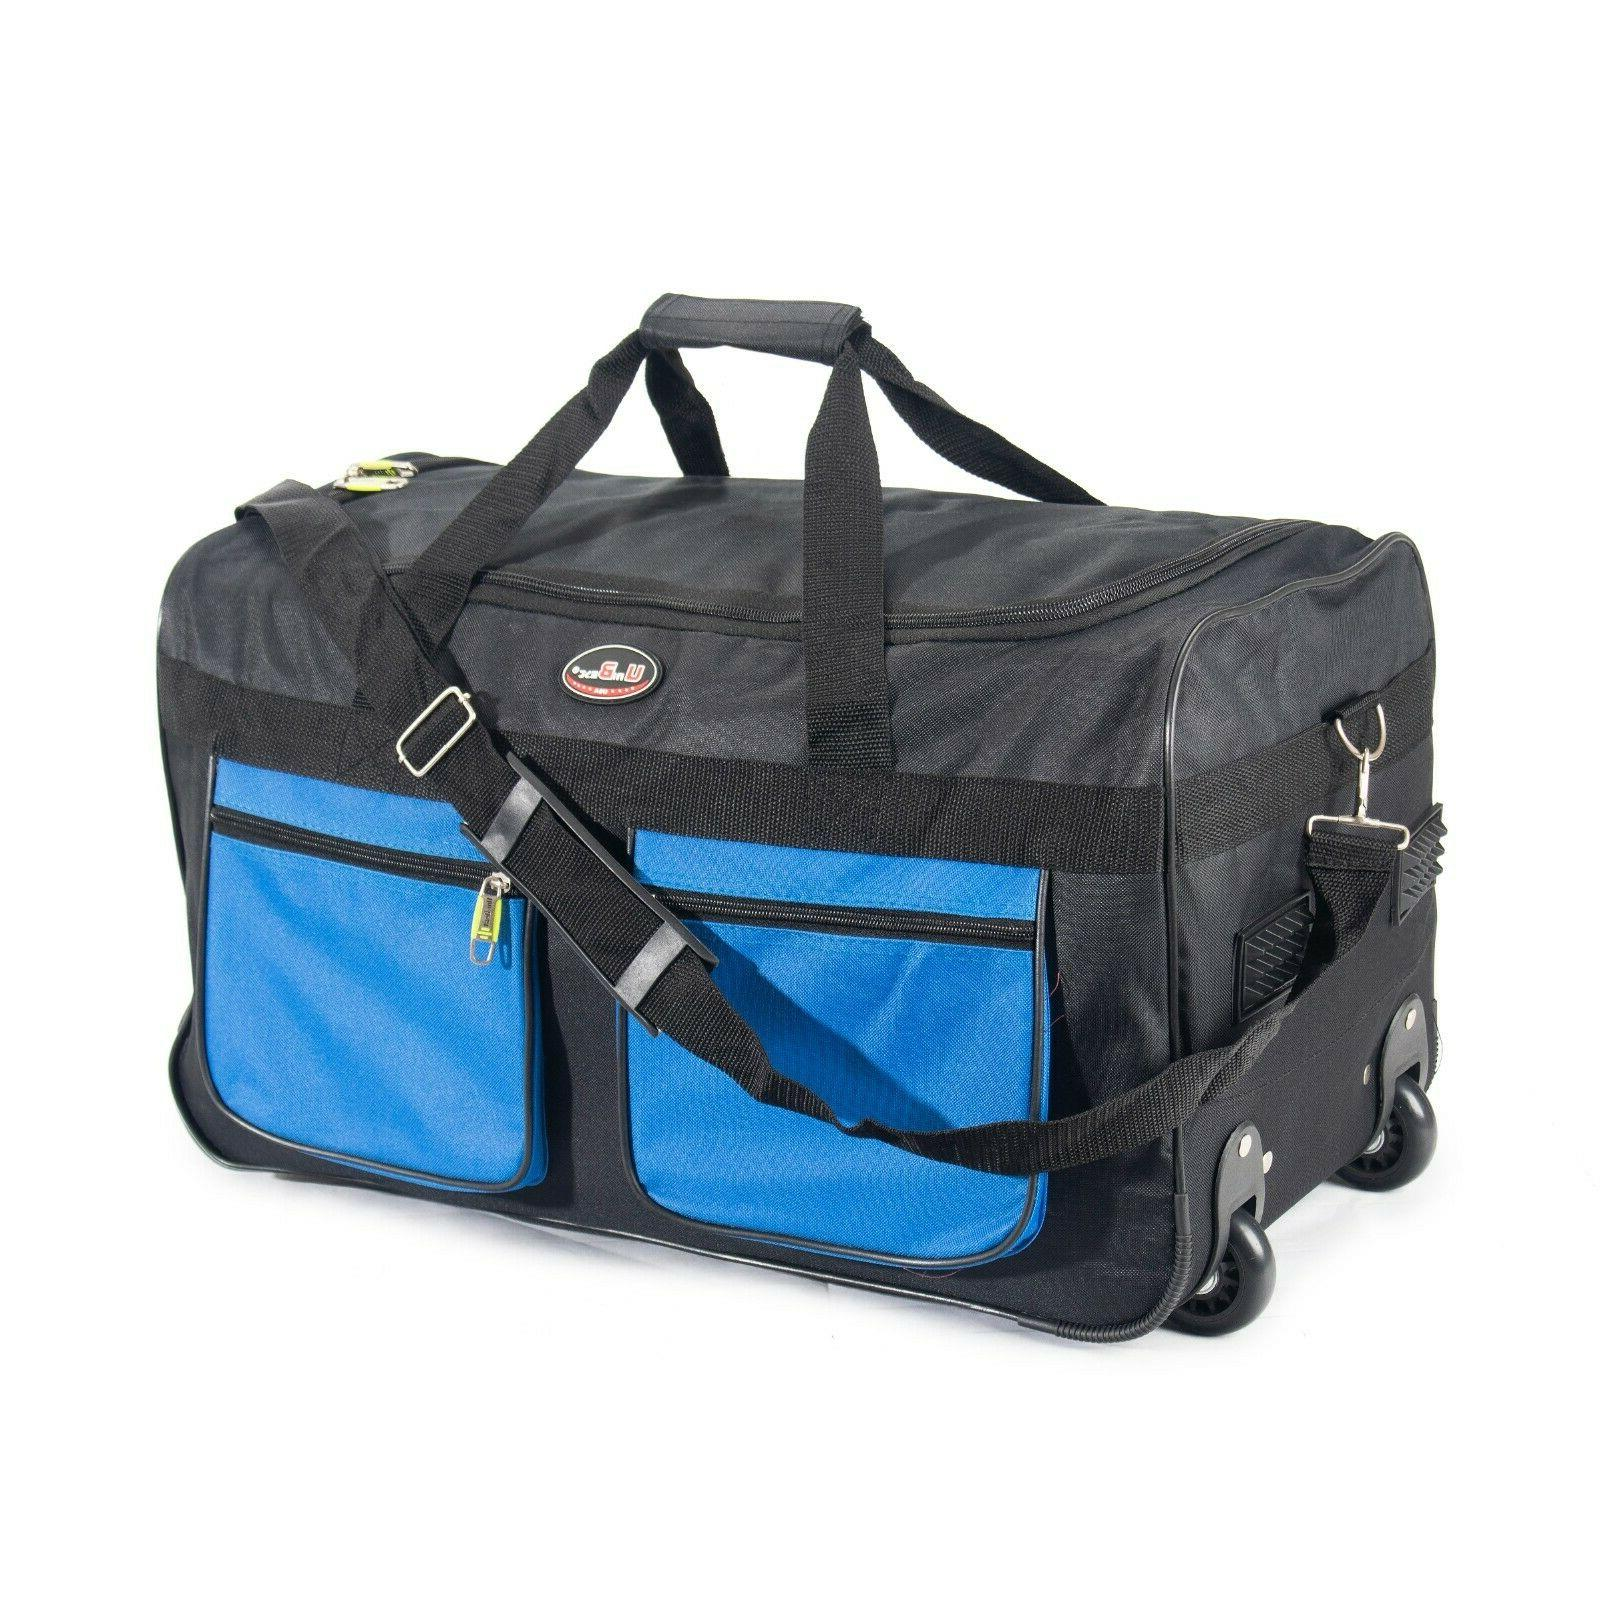 "22"" Rolling Wheeled Bag Carry Travel Suitcase Lighweight"